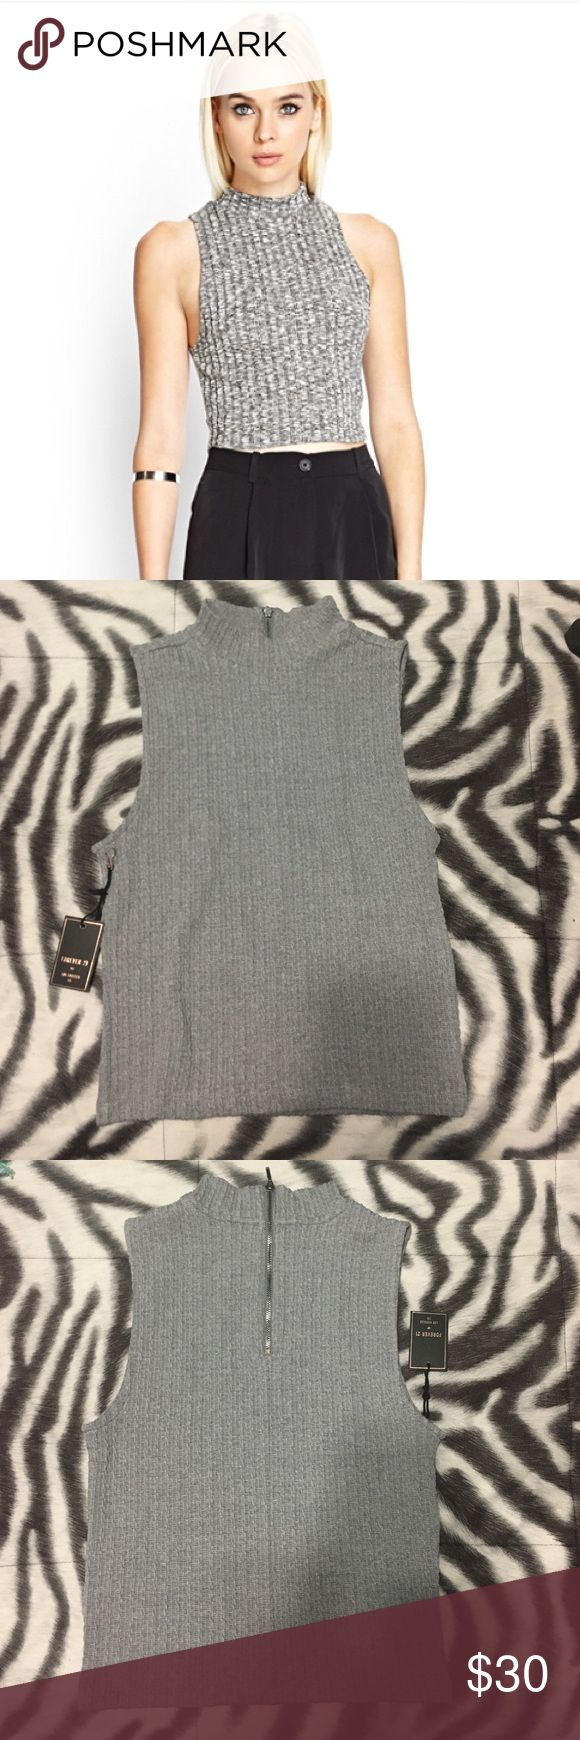 NWT Forever21 cropped sweater tank New and perfect condition, couldn't find exact picture online but VERY similar, just a darker gray color. Has somewhat of a turtle neck and a cute zipper in the back. Very cute for casual wear or even some leather leggings or dark jeans with heels for a night out. Selling only because I am short torso so it didn't fit the way I wanted it to. Forever 21 Tops Crop Tops